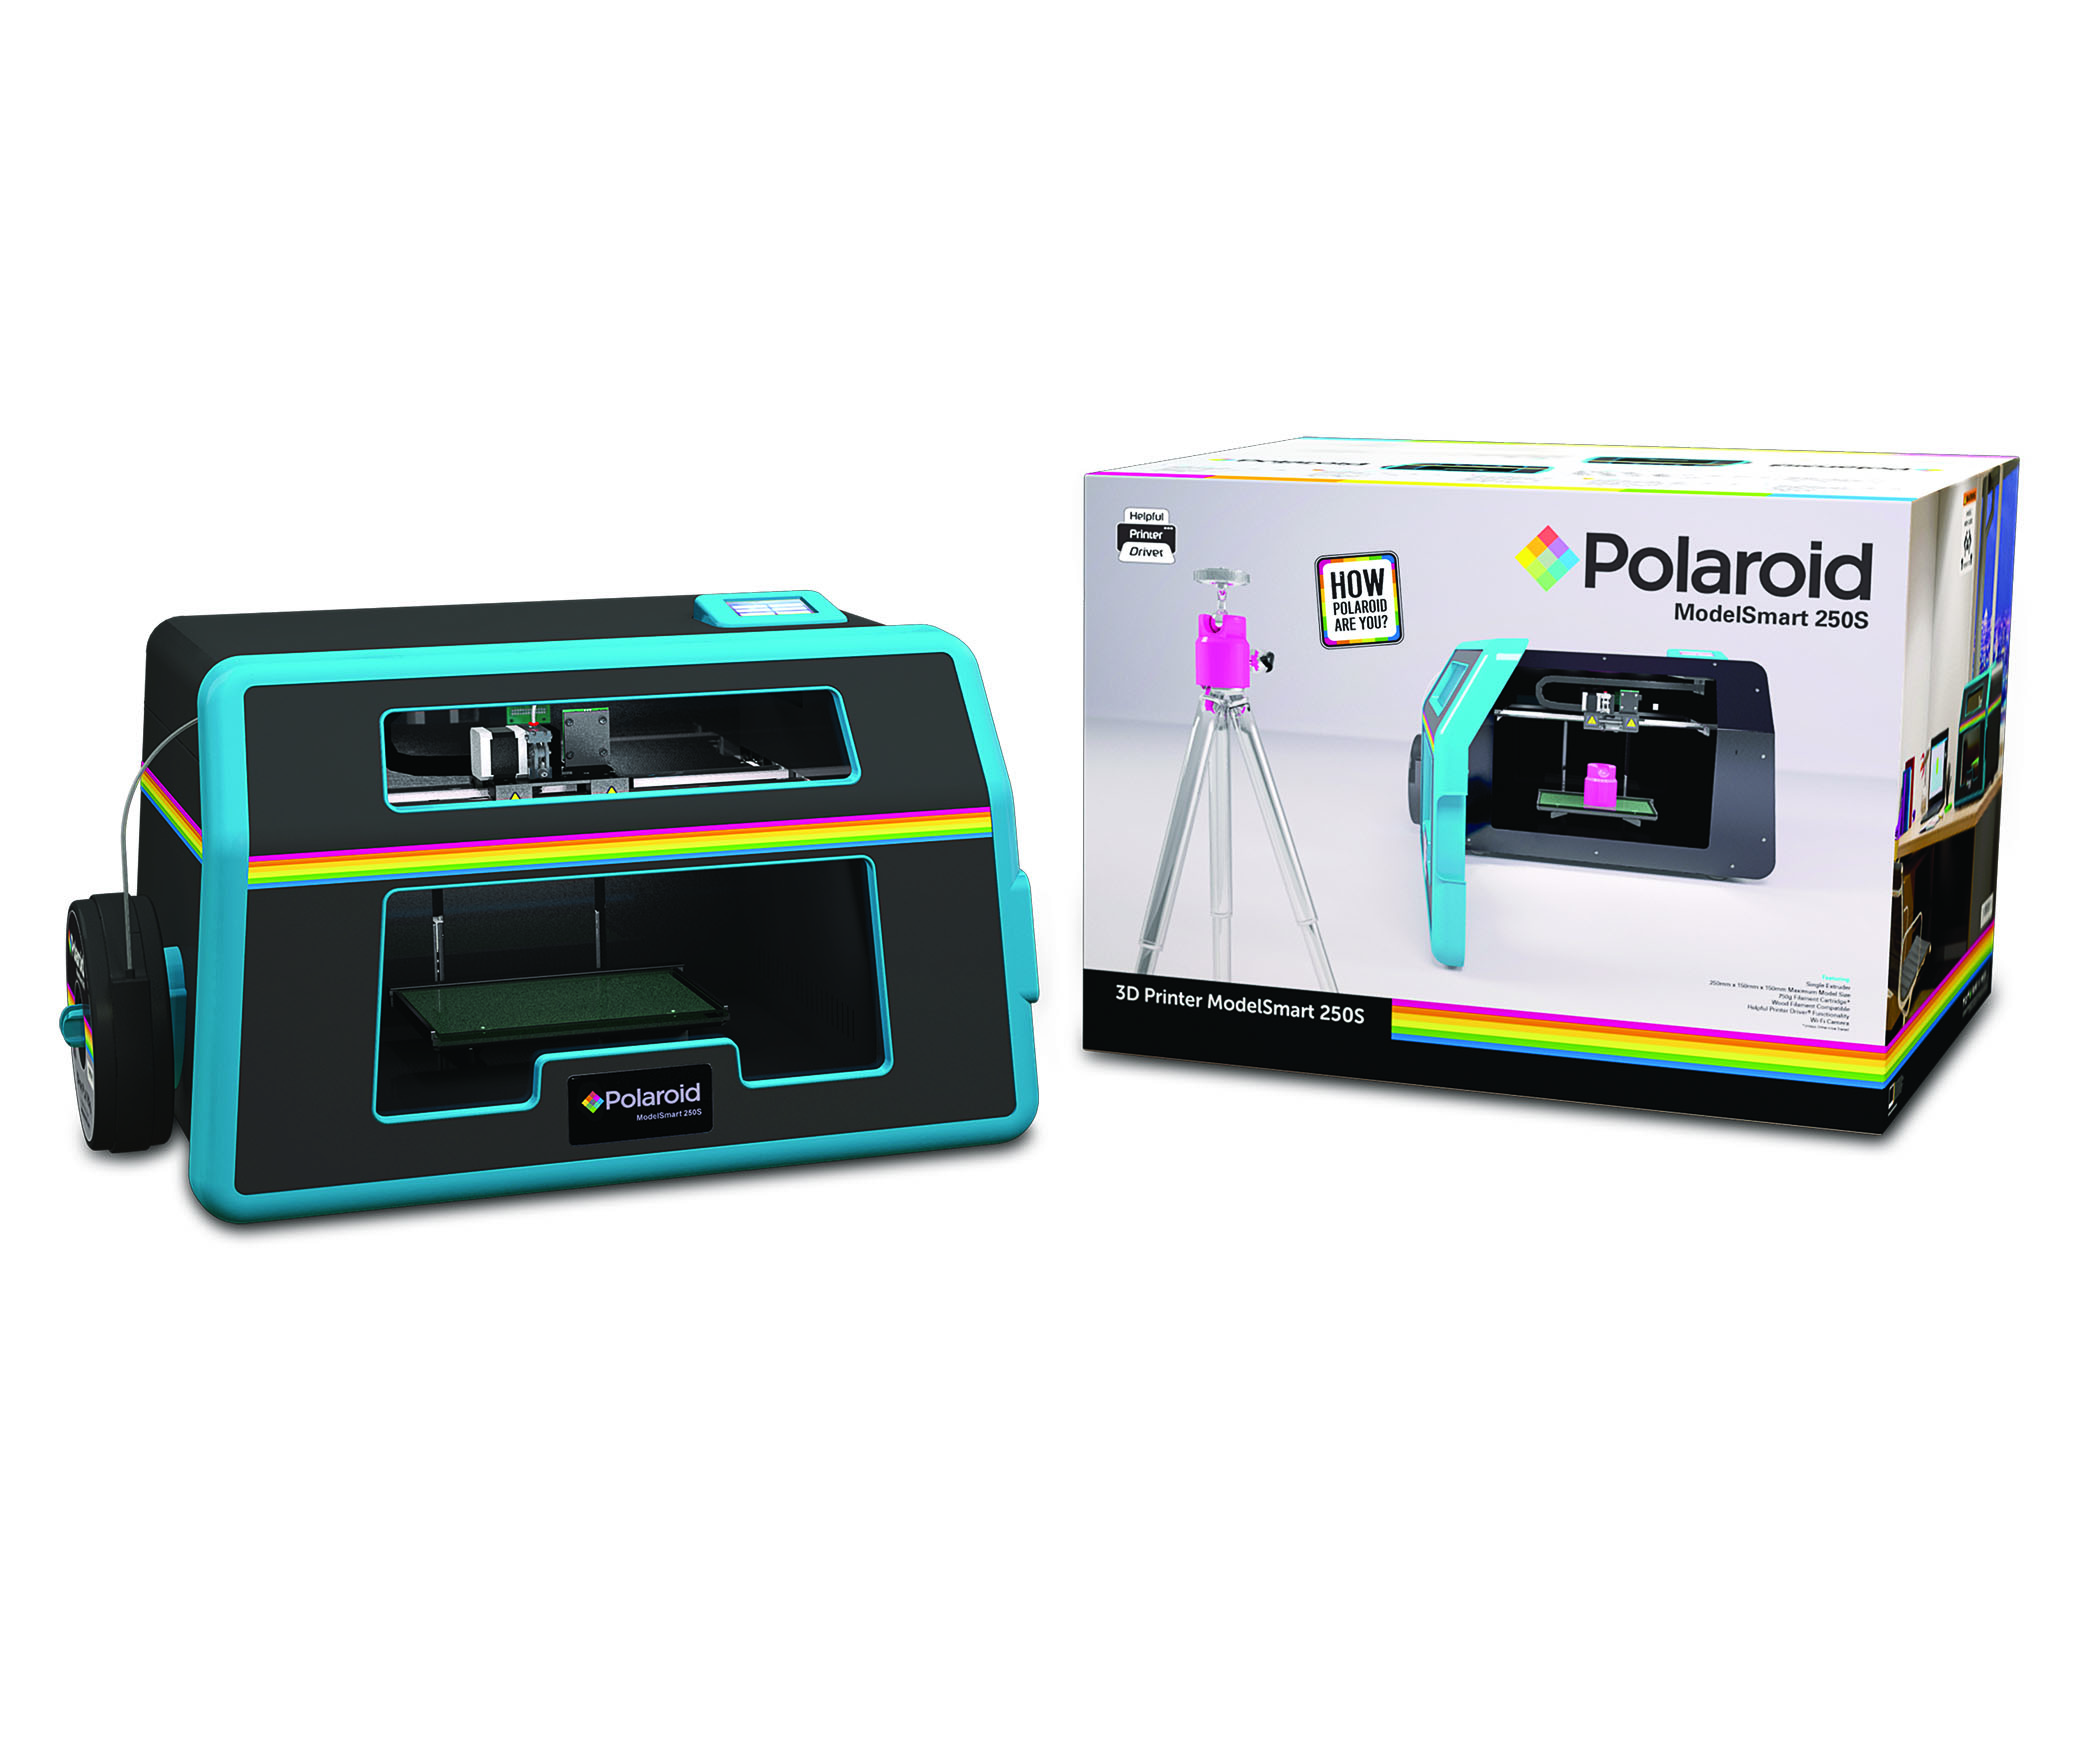 Polaroid 3D Printer2